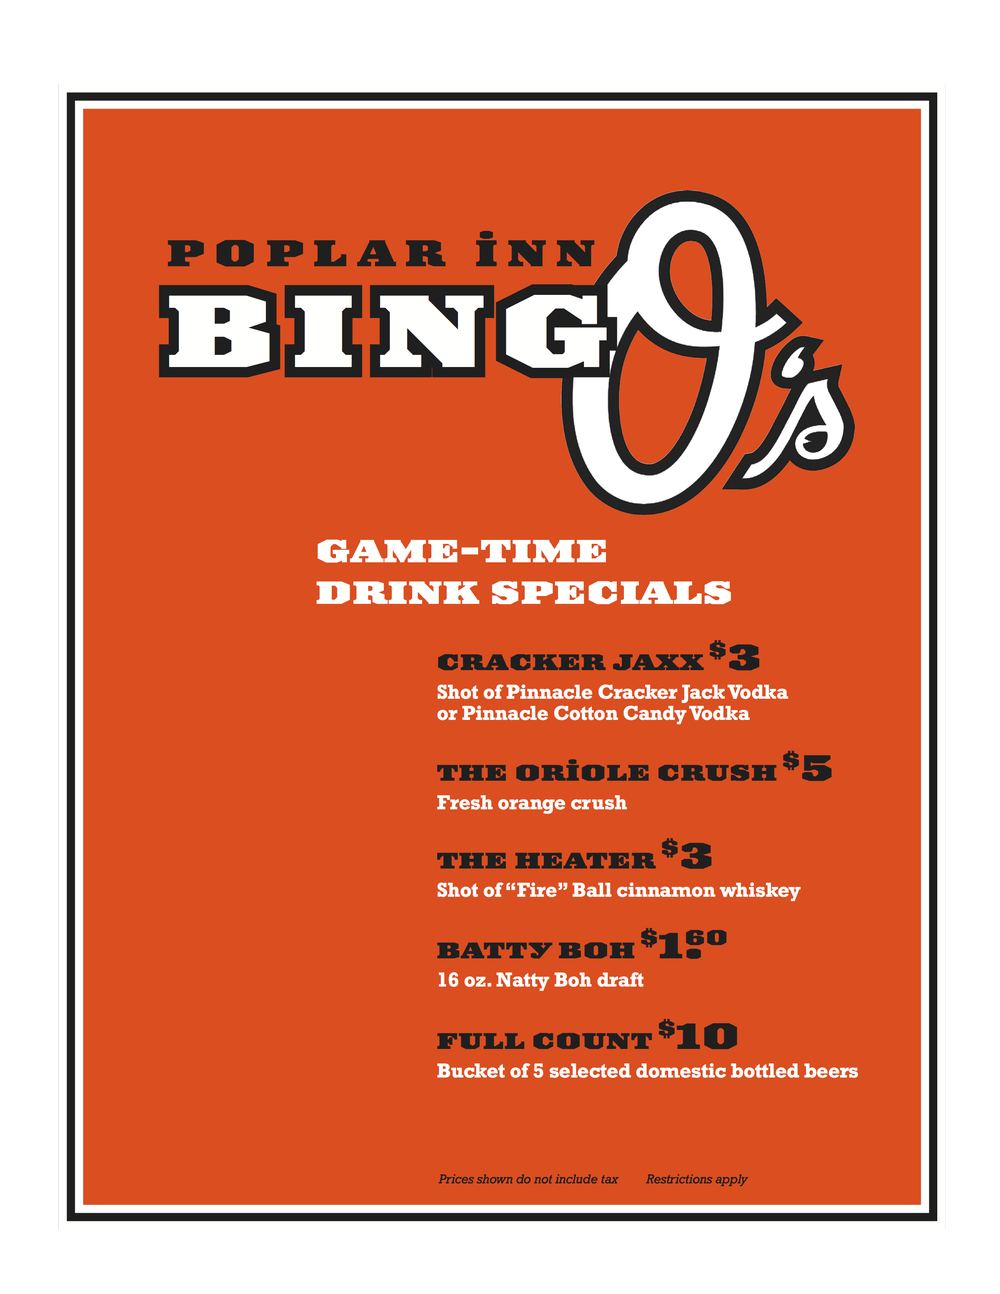 Come on in for these gameday drink specials.